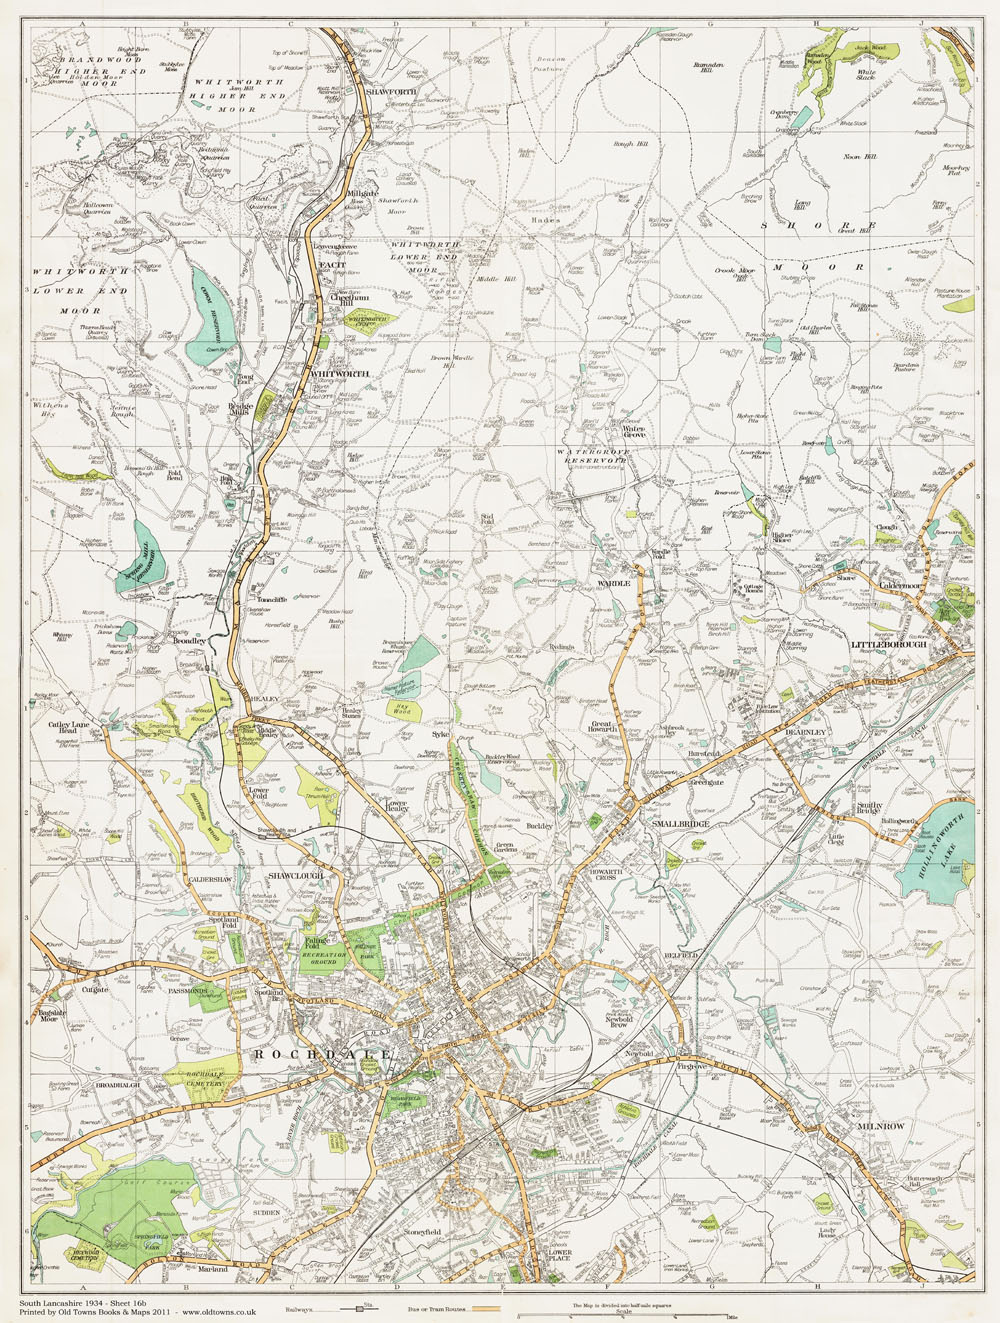 An old map of the Rochdale and Whitworth area Lancashire in 1934 as